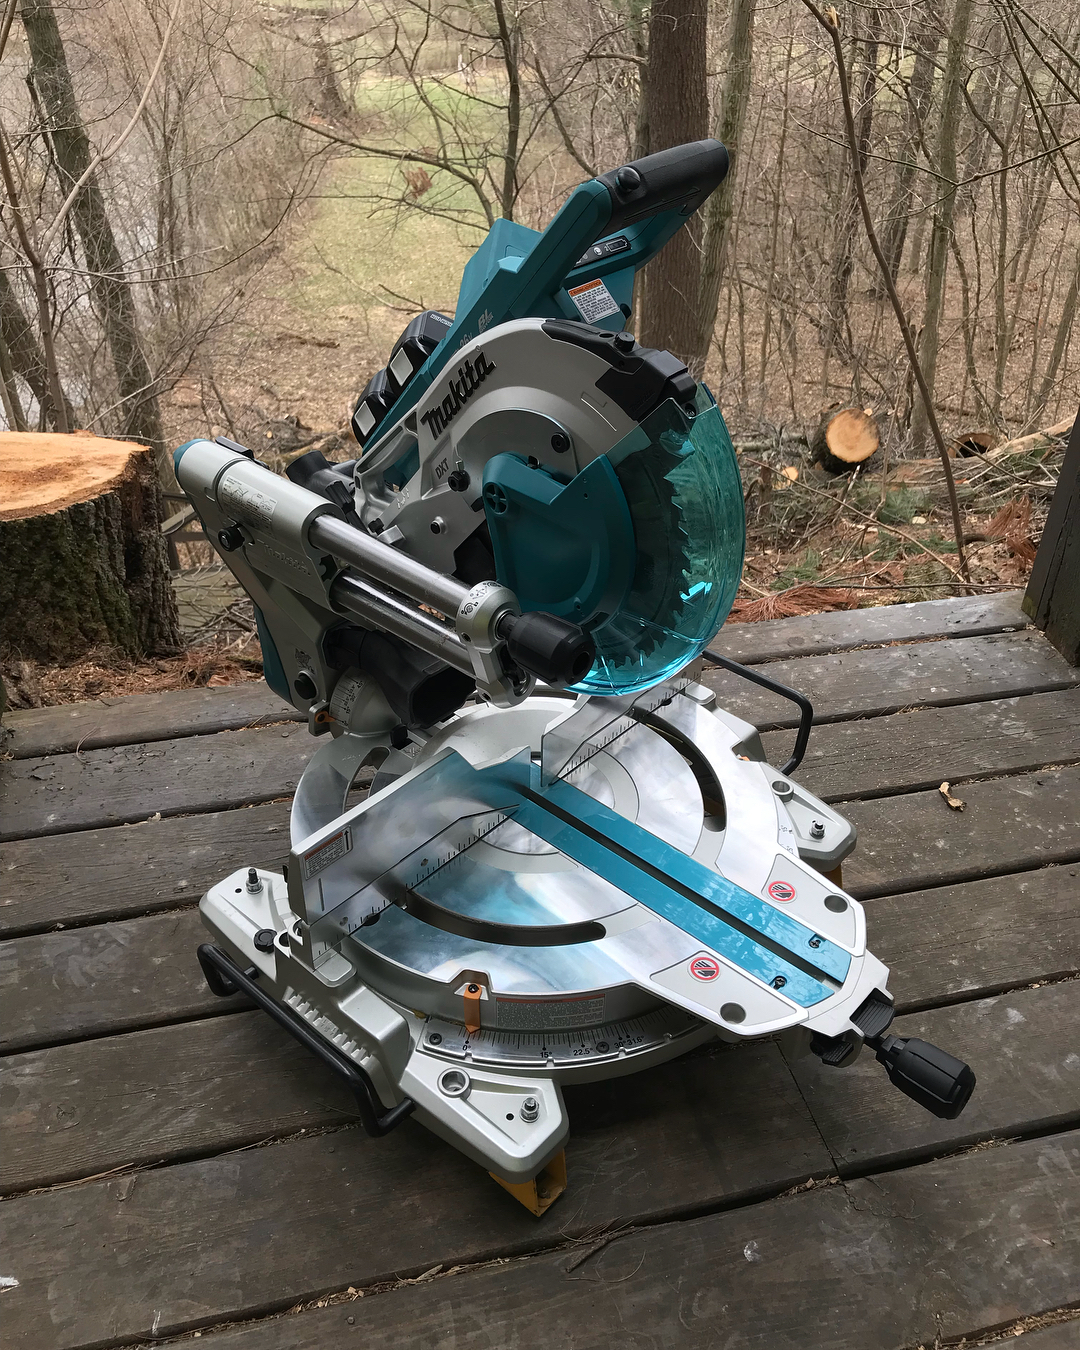 Circular Saw Vs Miter Saw – Which One Should A Beginner Use?